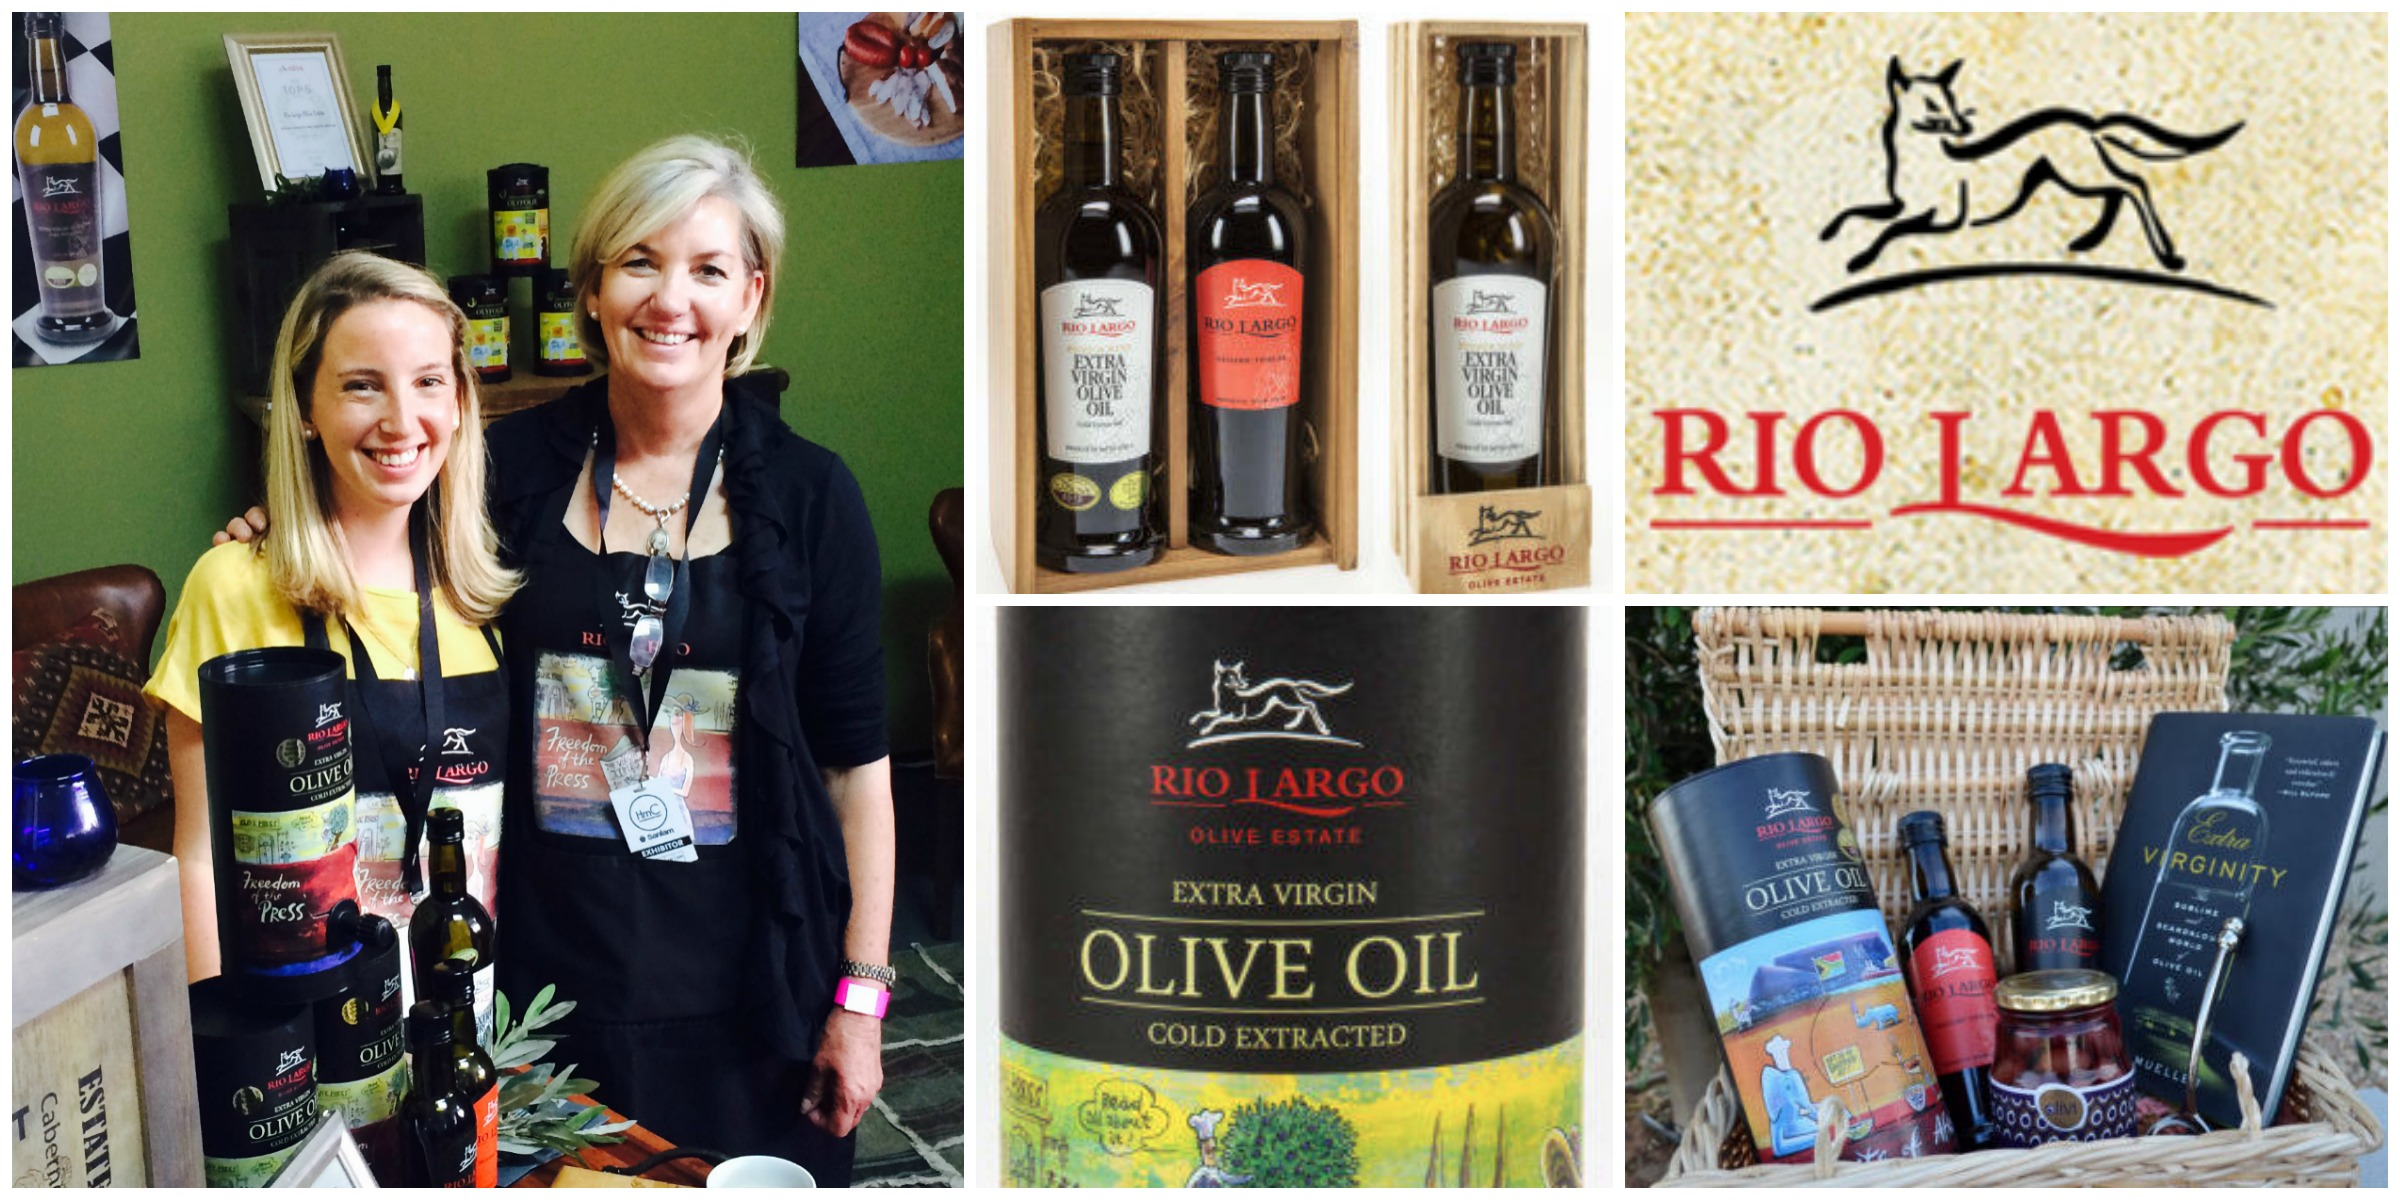 Brenda Wilkinson  and her daughter,the amazing women behind Rio Largo olive oil company